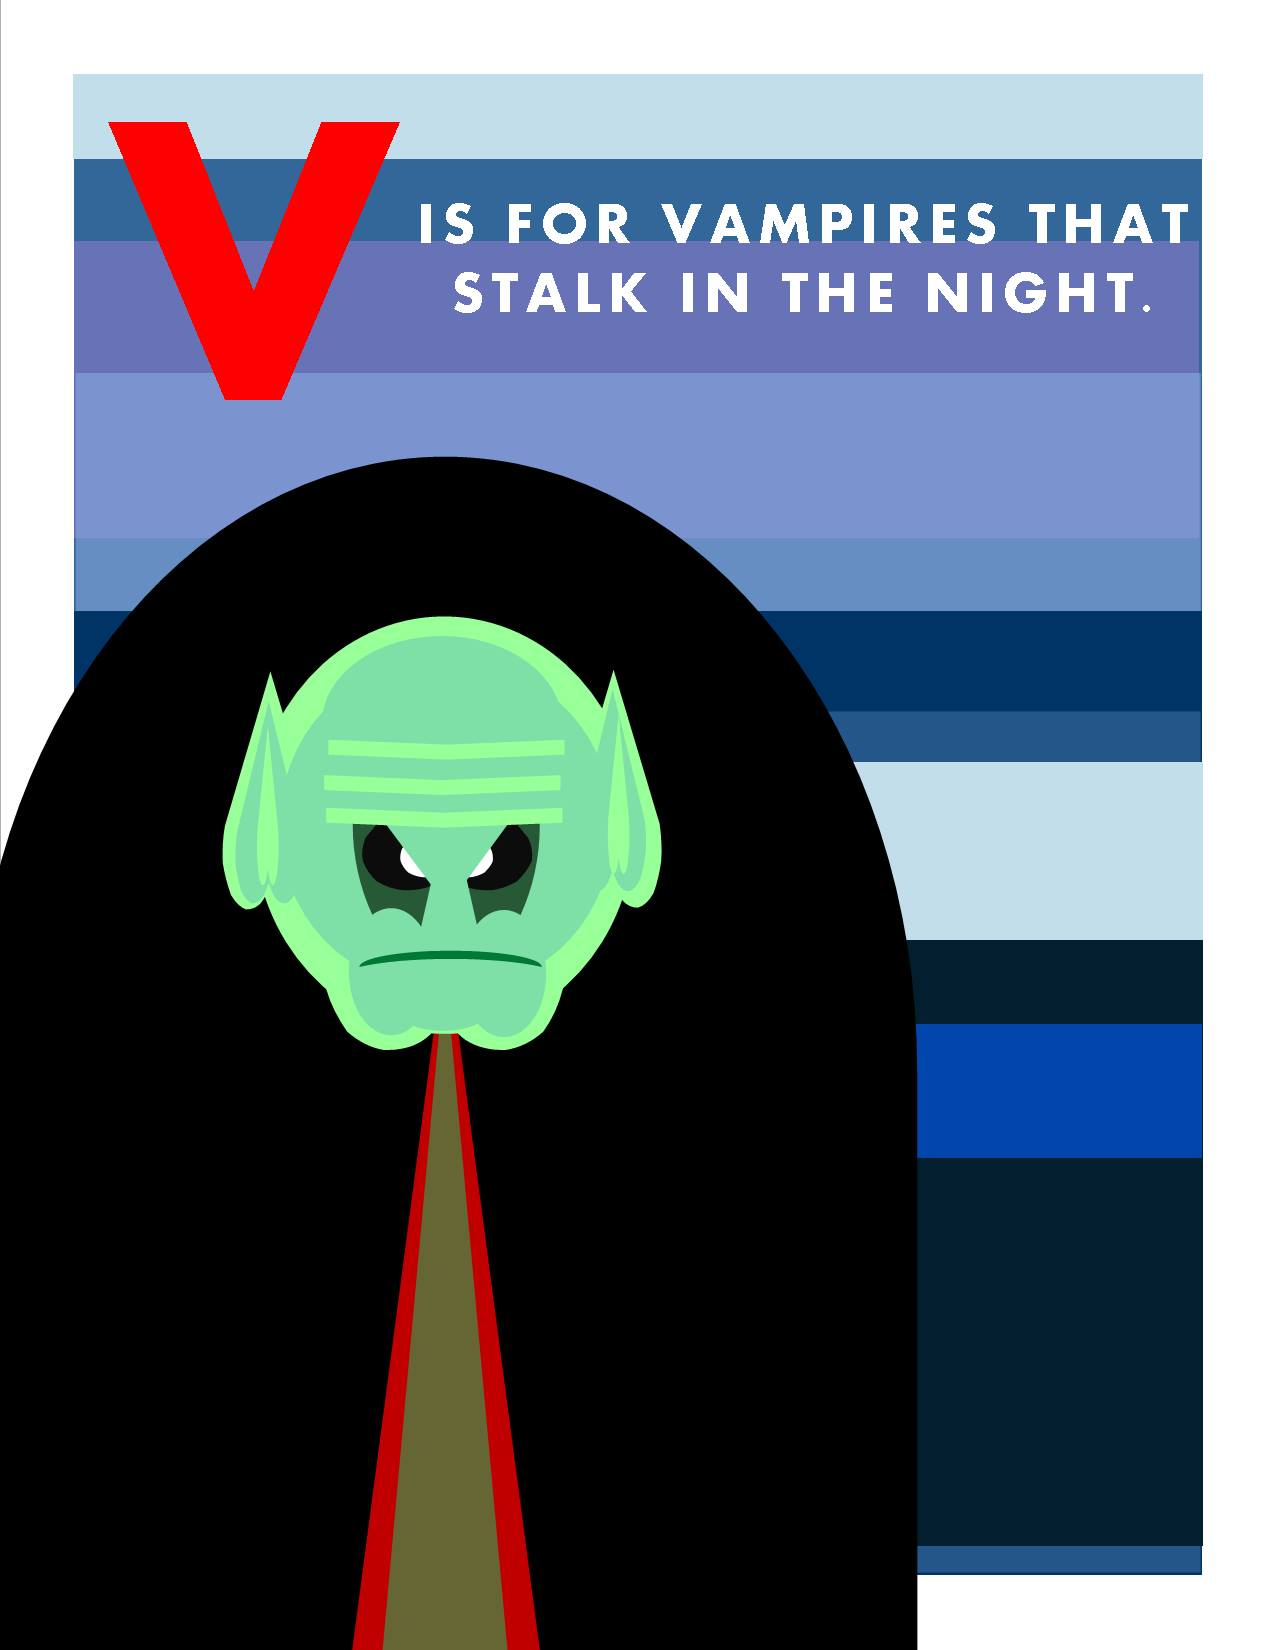 V is for Vampires that Stalk in the Night